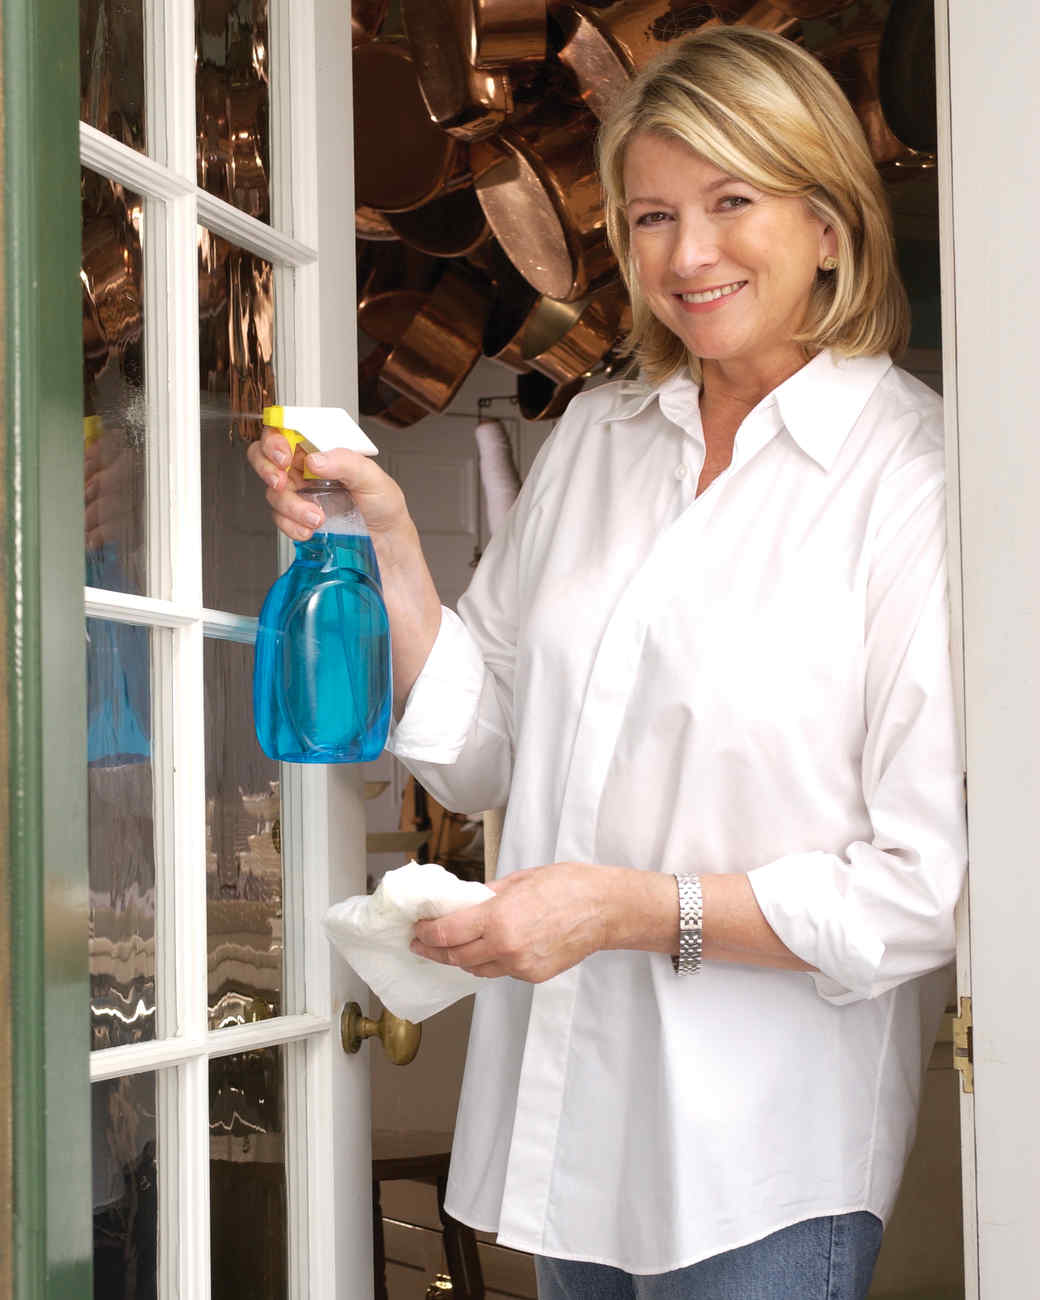 msl_0310_martha_wash_windows.jpg